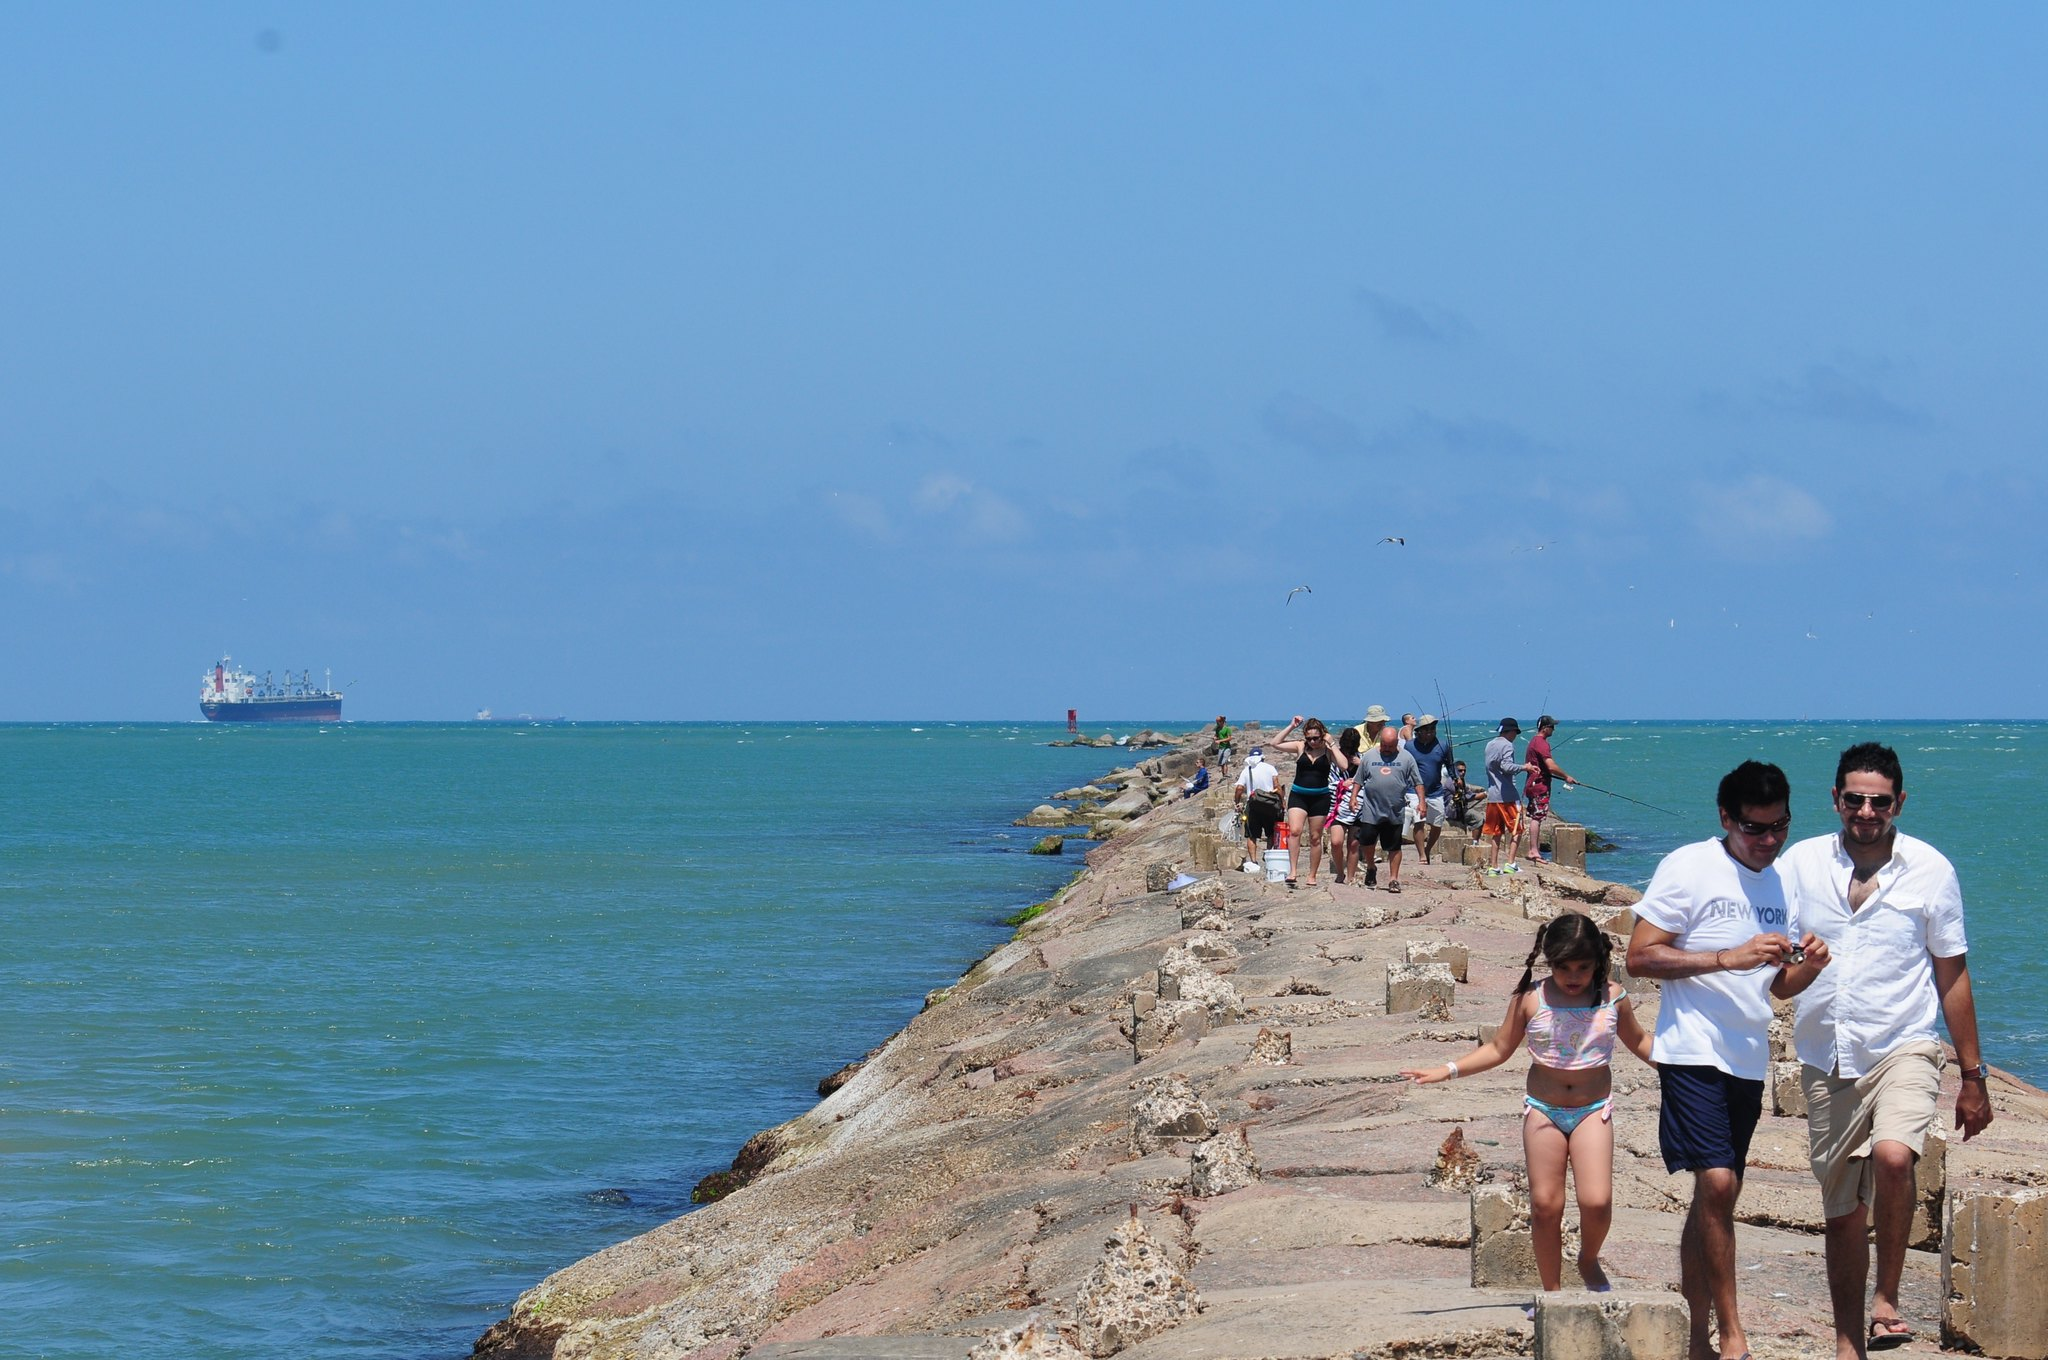 Best Place to Vacation in Texas-South Padre Island, Isla Blanca Park